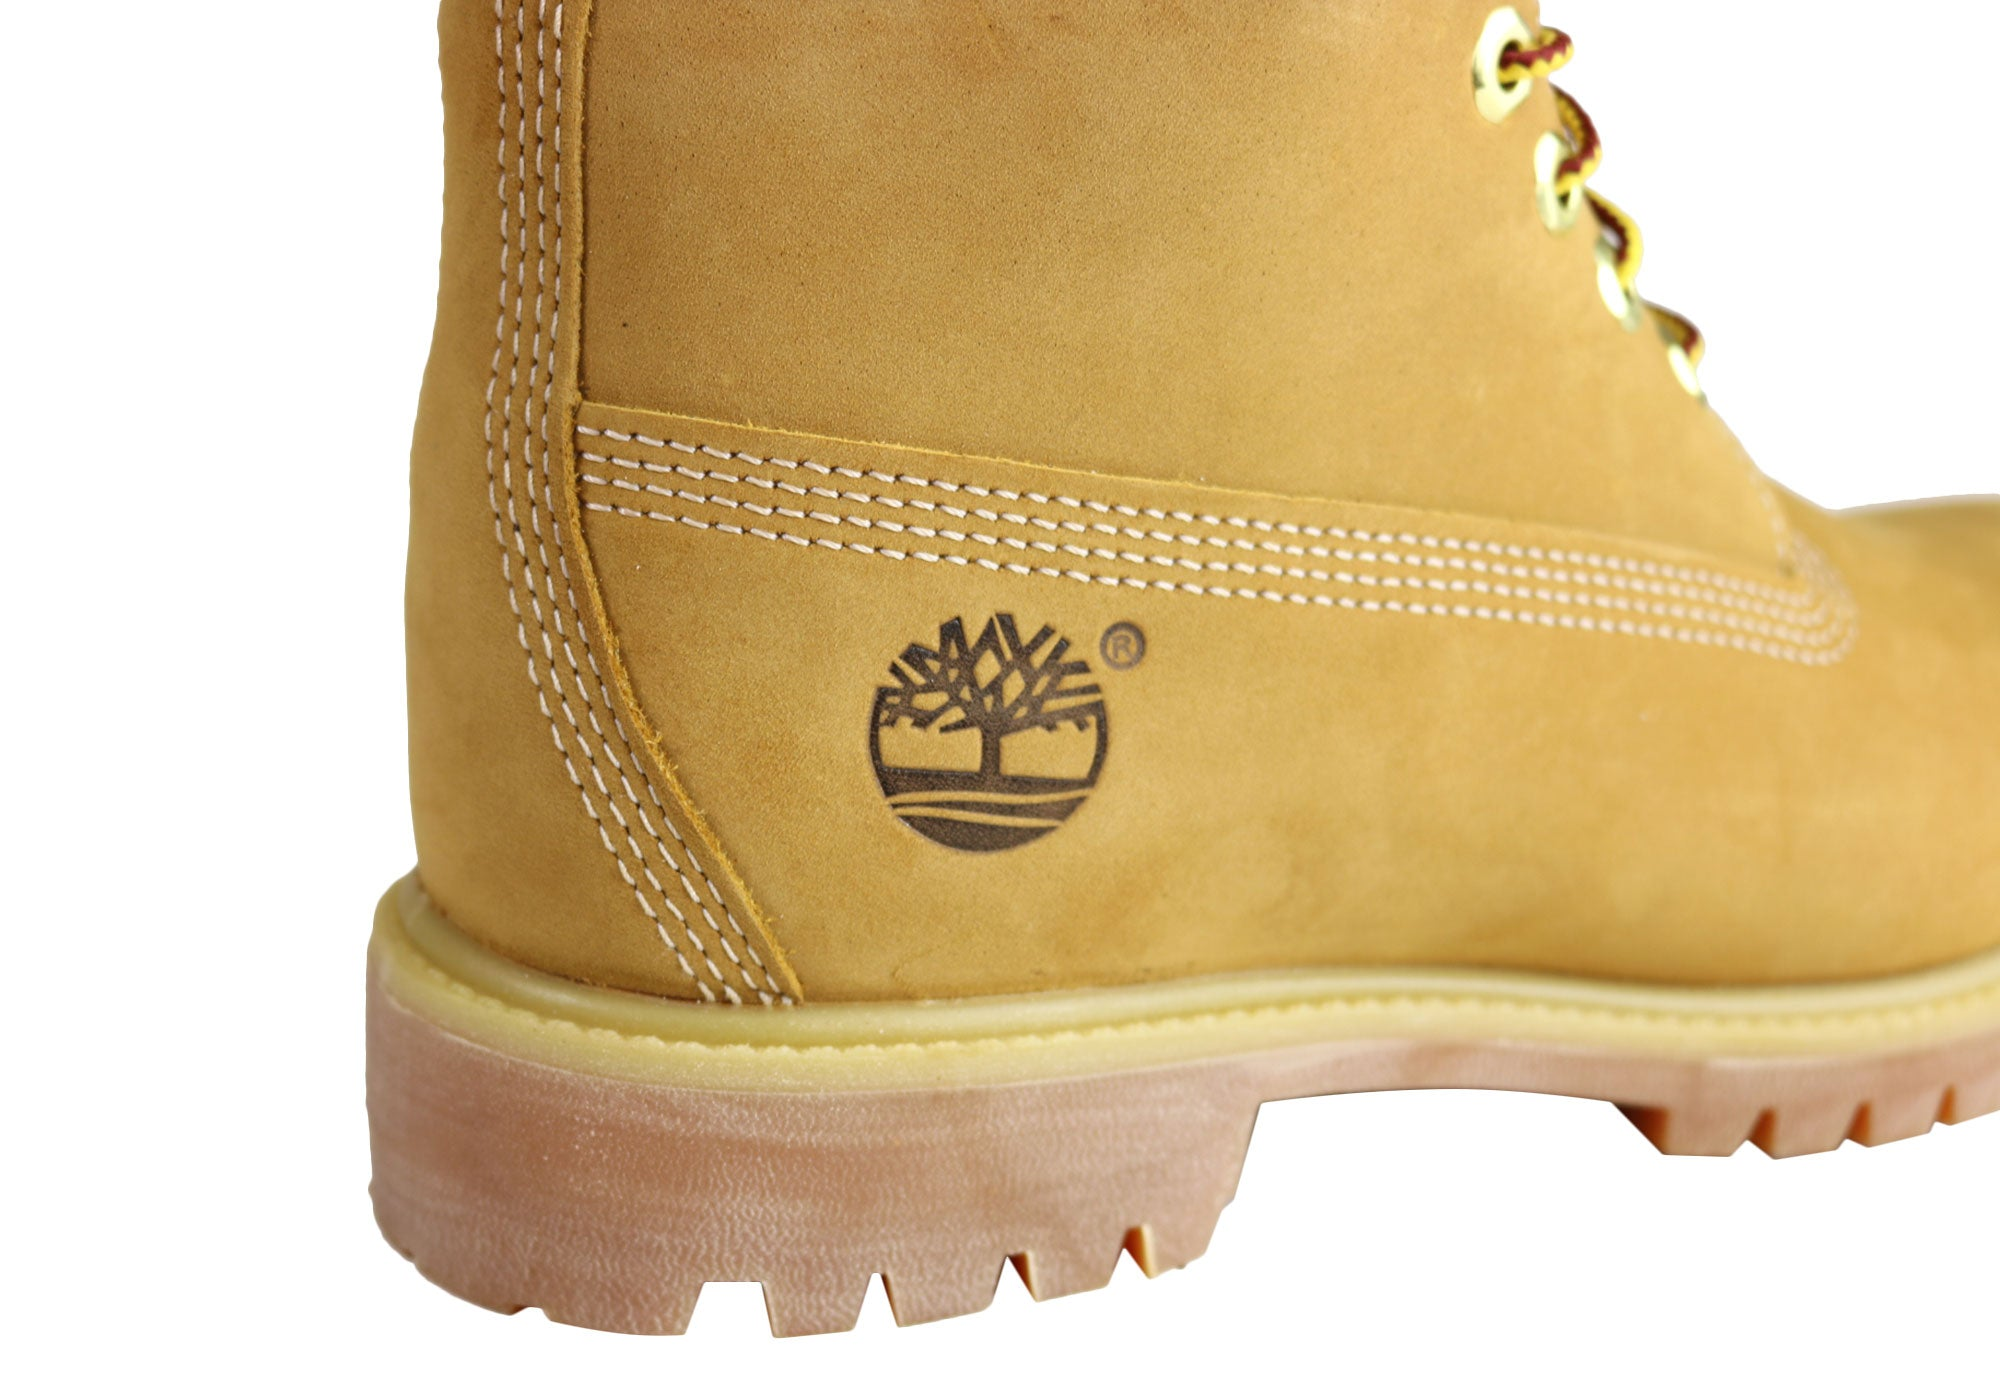 NEW-TIMBERLAND-MENS-COMFORTABLE-LACE-UP-6-INCH-PREMIUM-WATERPROOF-BOOTS thumbnail 6